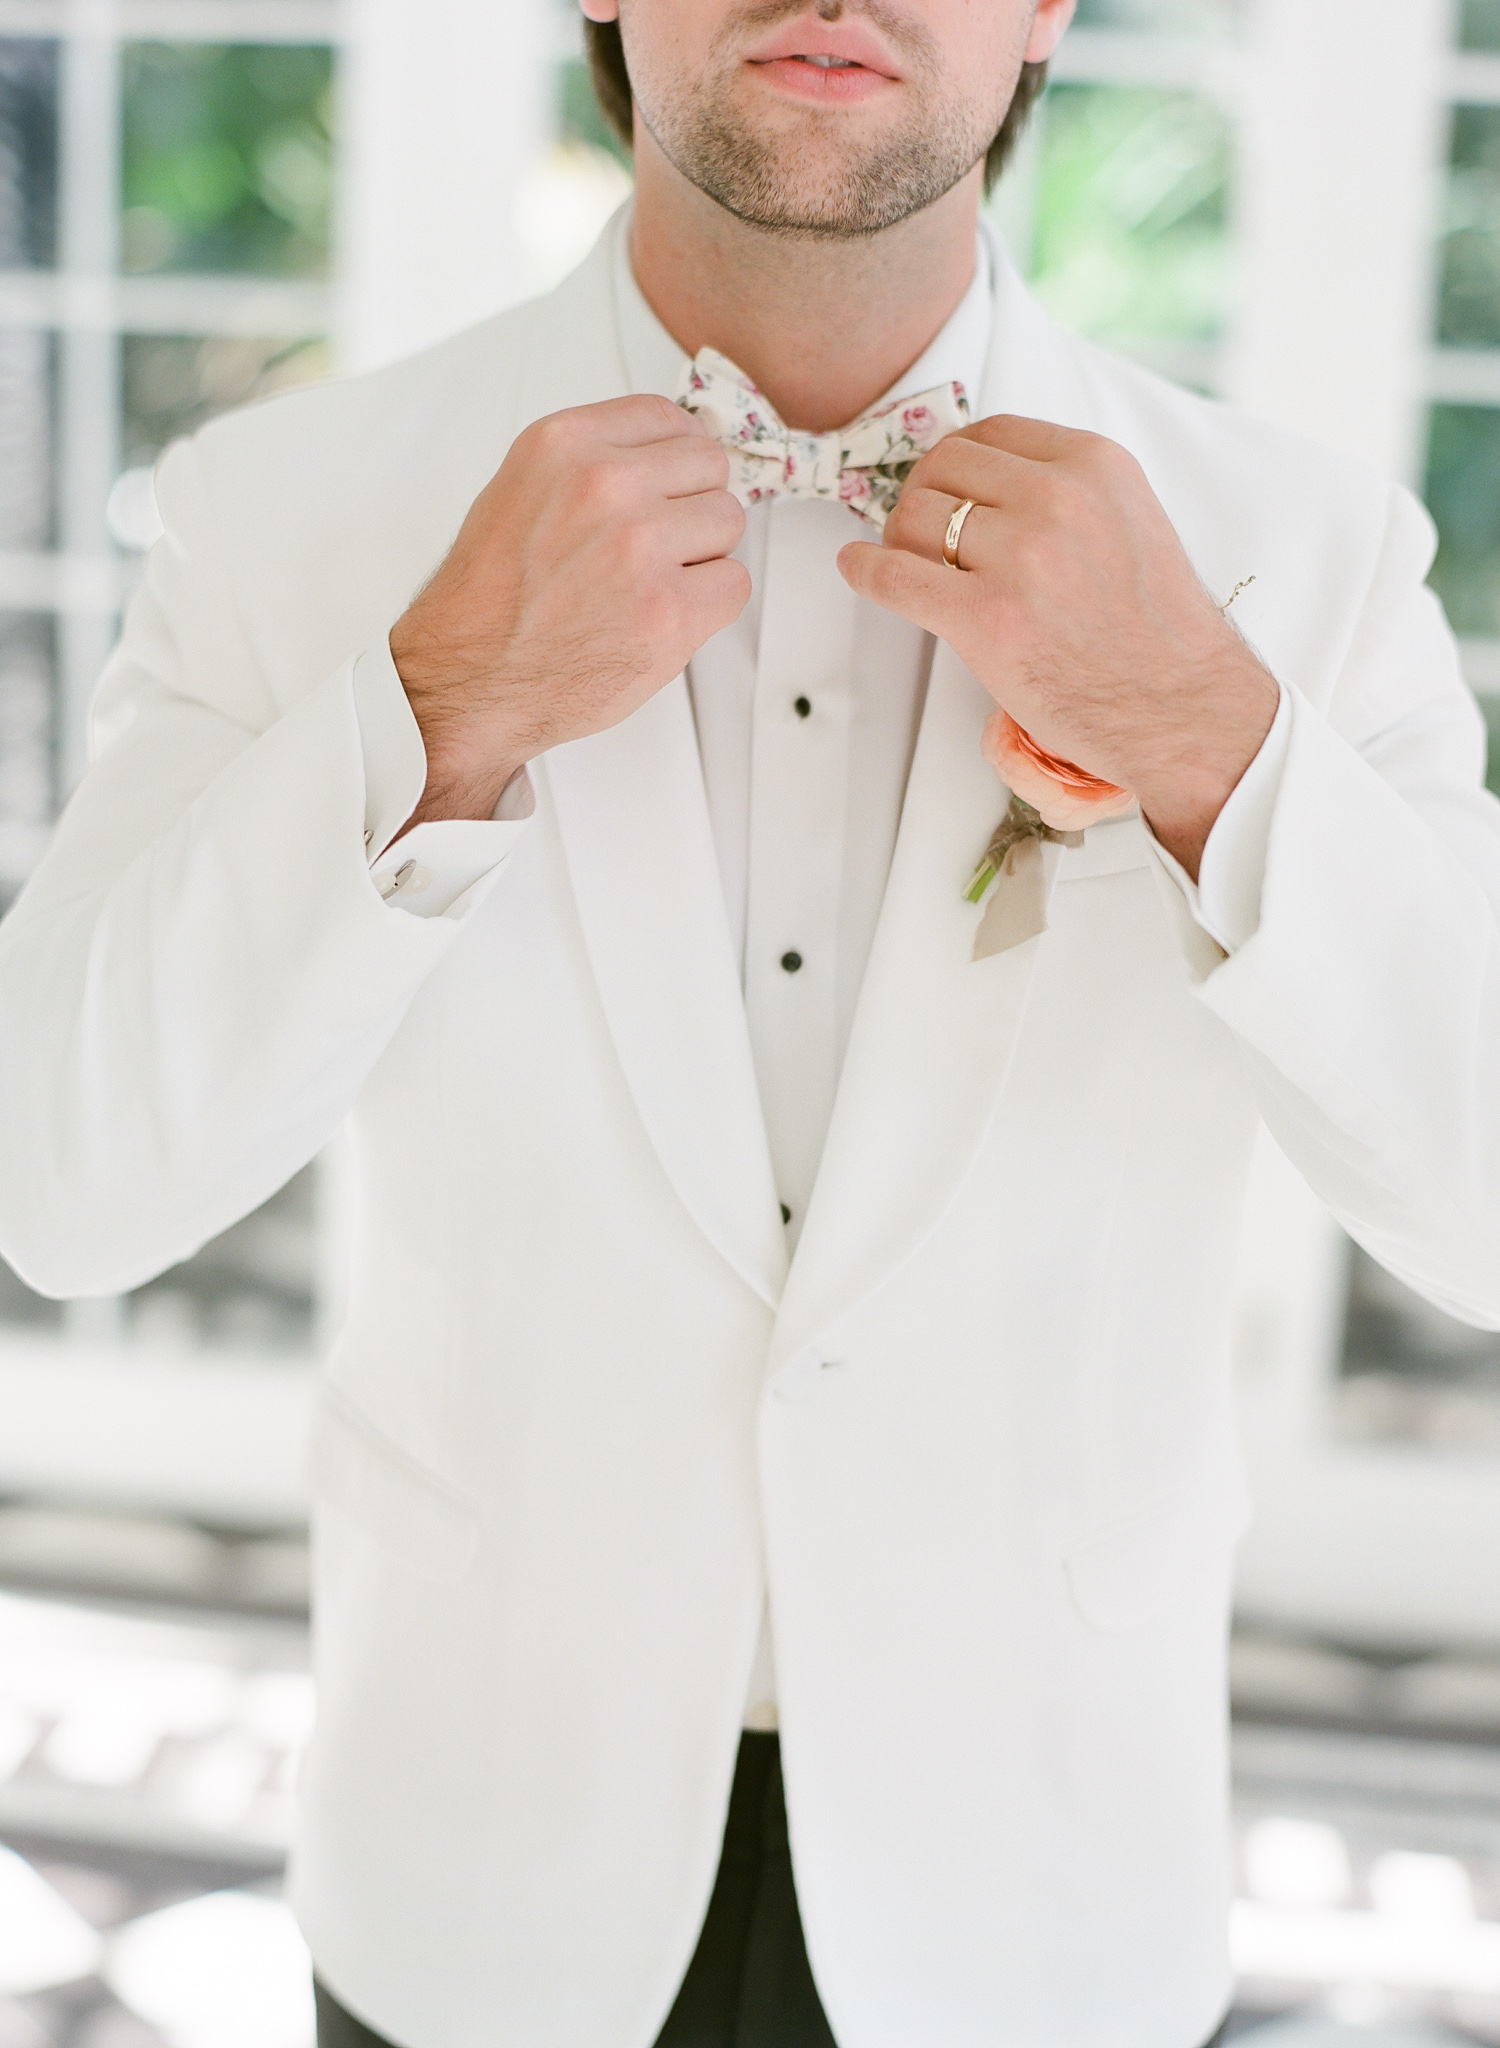 Groom-White-Suit.jpg